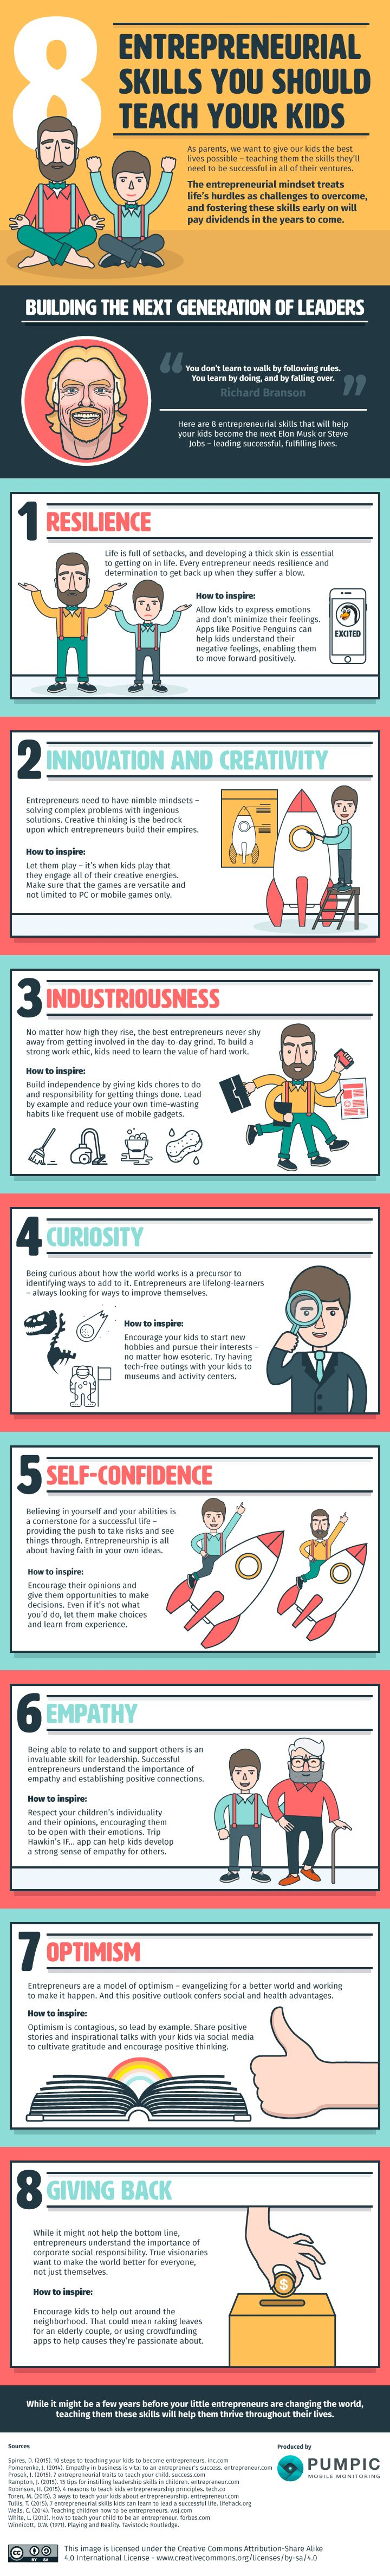 Parents and guardians do many things to ensure the success of their charges, but after reading, 'rithmetic, and not picking one's nose in public, entrepreneurial skills can be tackled starting at a young age.Here are a few lessons to get them off to a great start.Via Pumpic.Educational infographics.